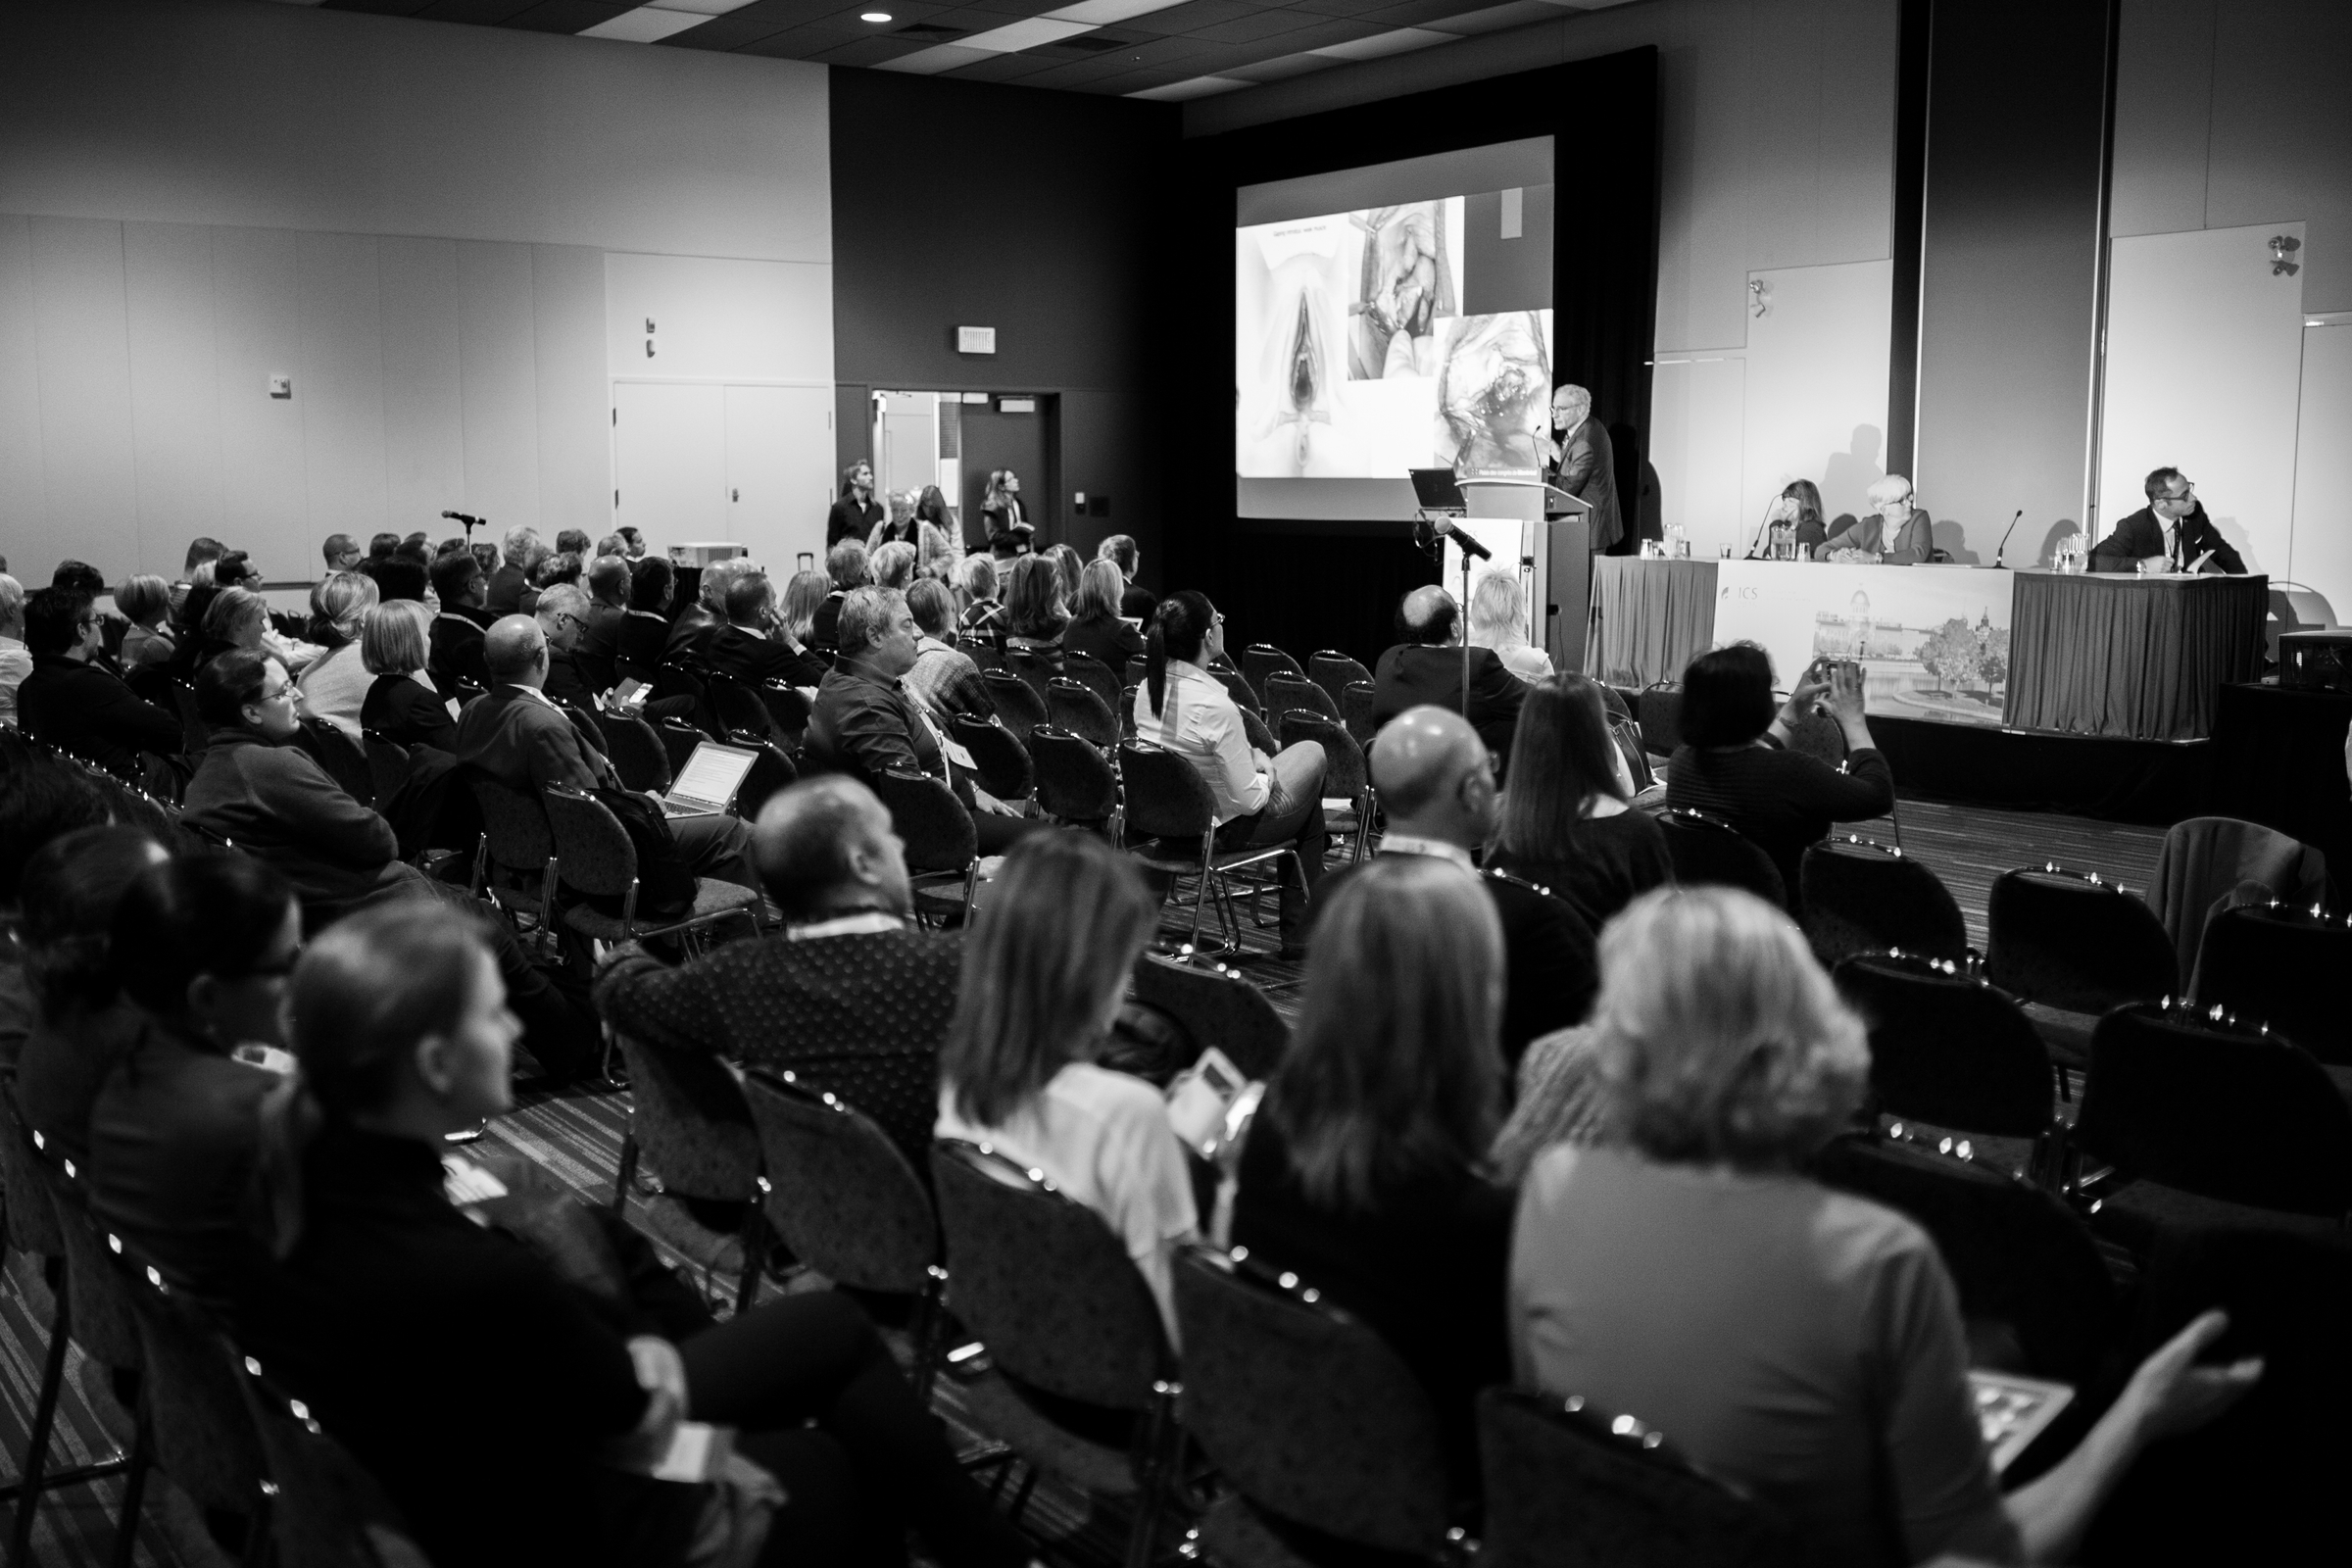 Annual Meeting of the International Continence Society (ICS) in Montreal, Canada